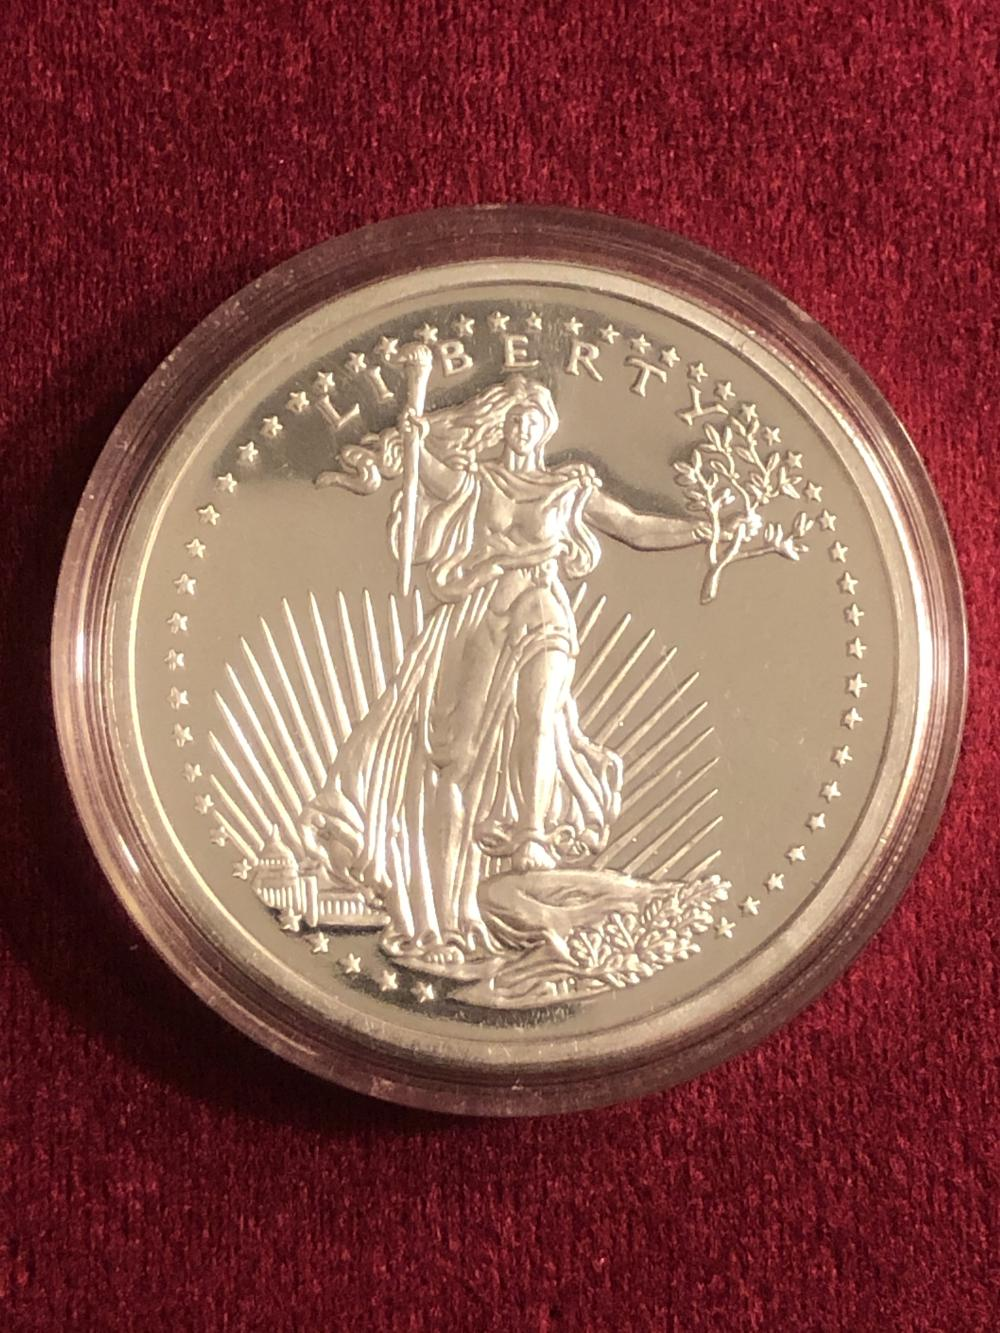 Five Troy ounce .999 fine silver round